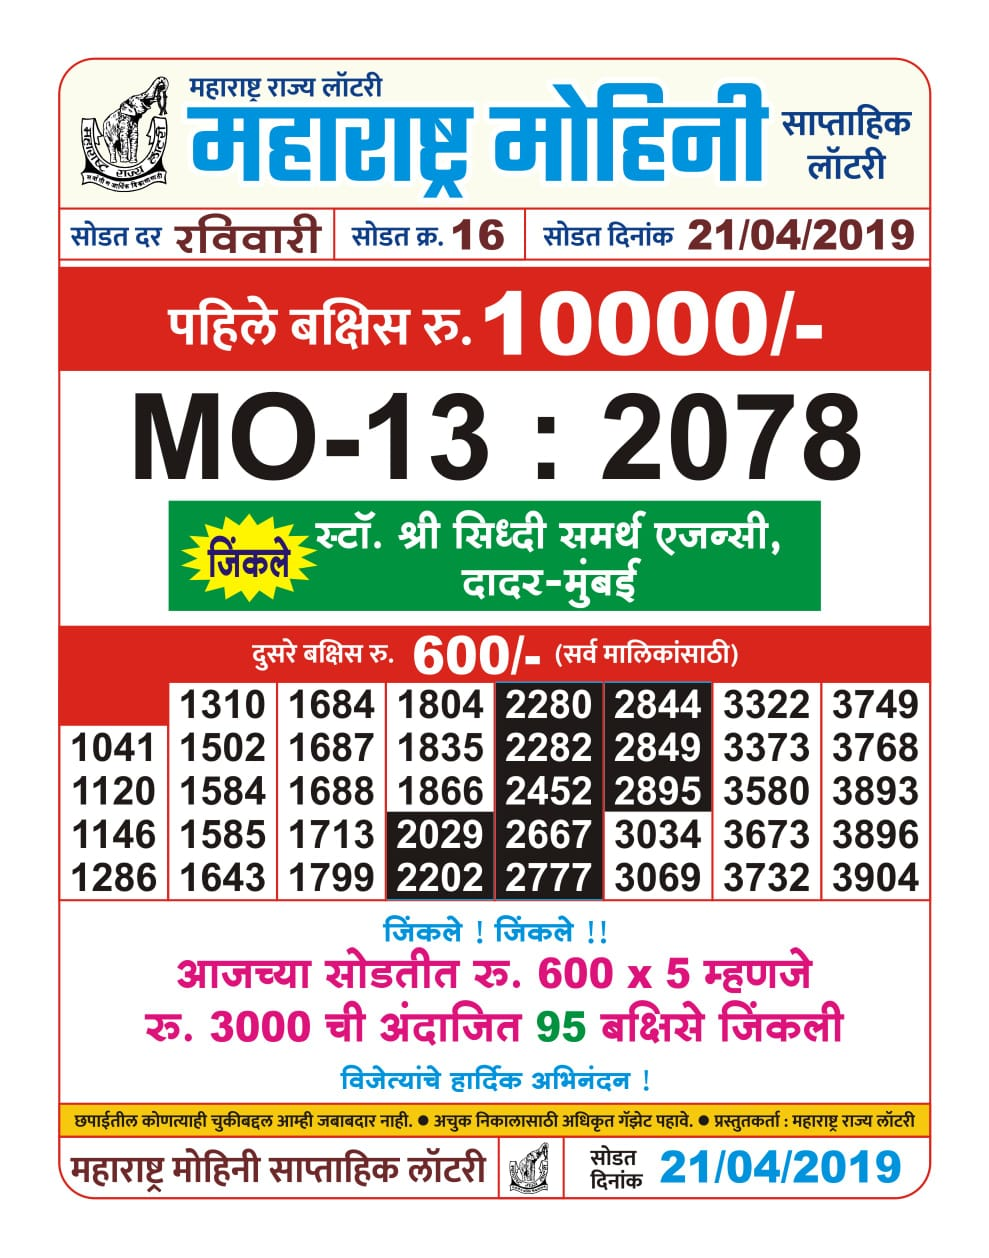 Showing lottery result of Maharashtra mohini 21 Apr 2019 At